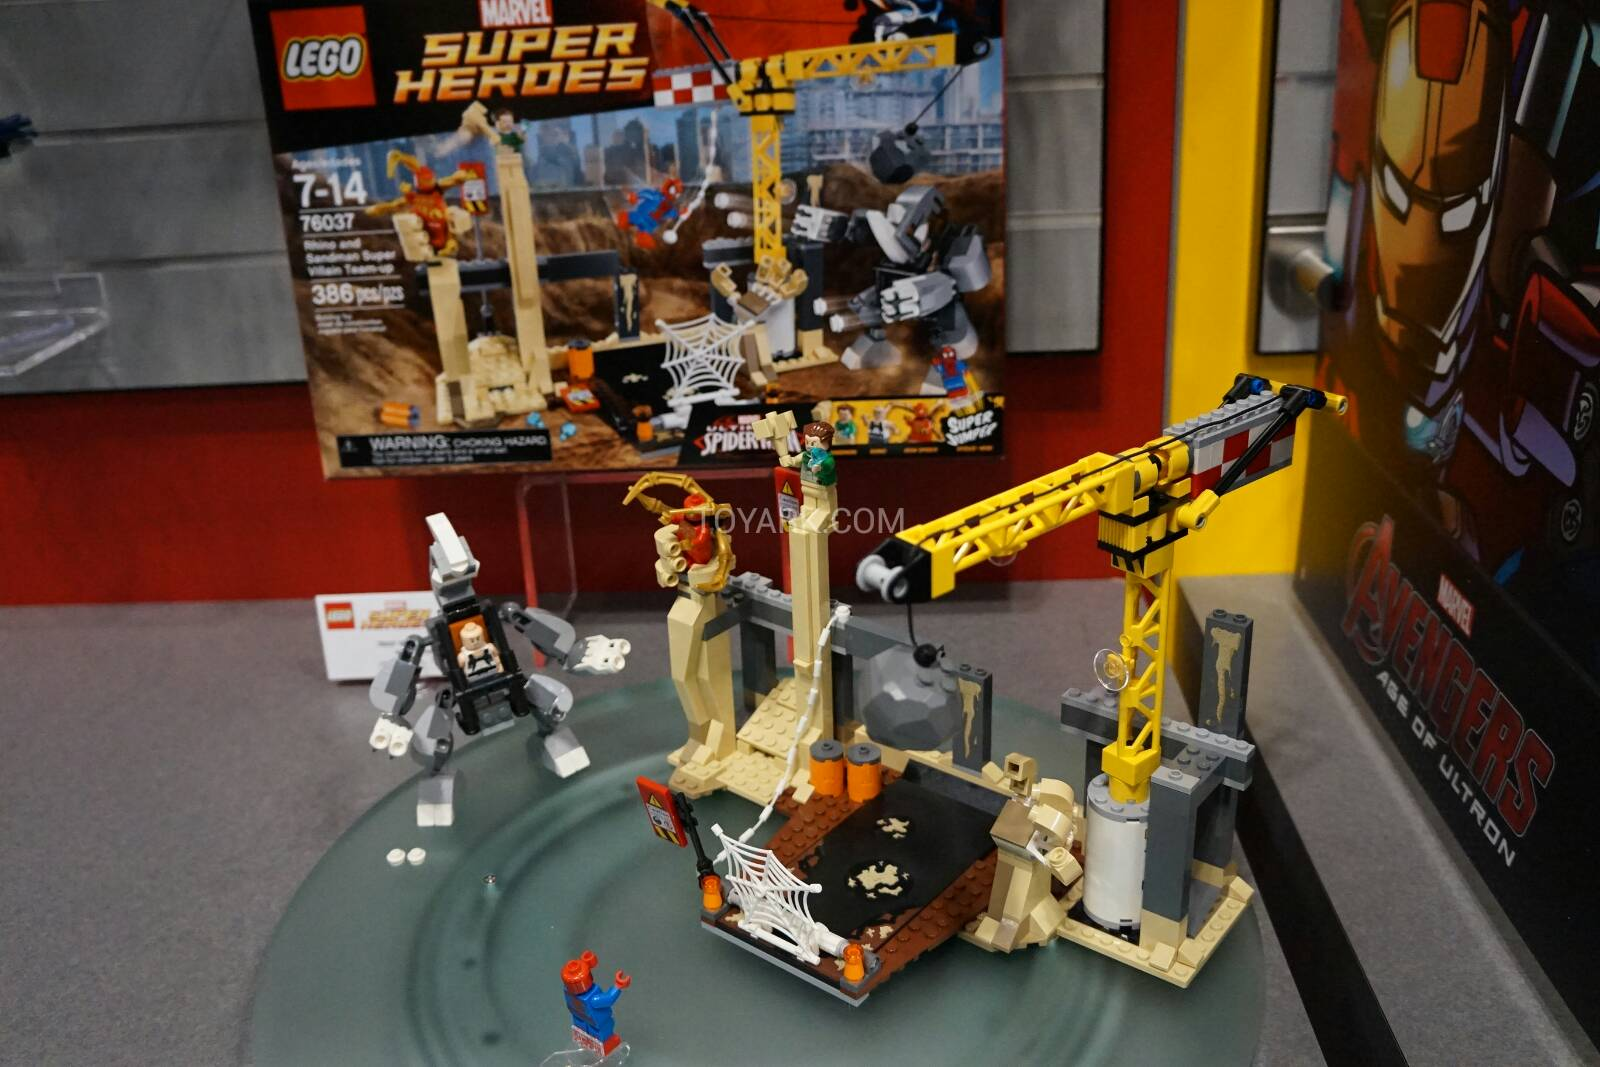 Lego marvel super heroes at toy fair 2015